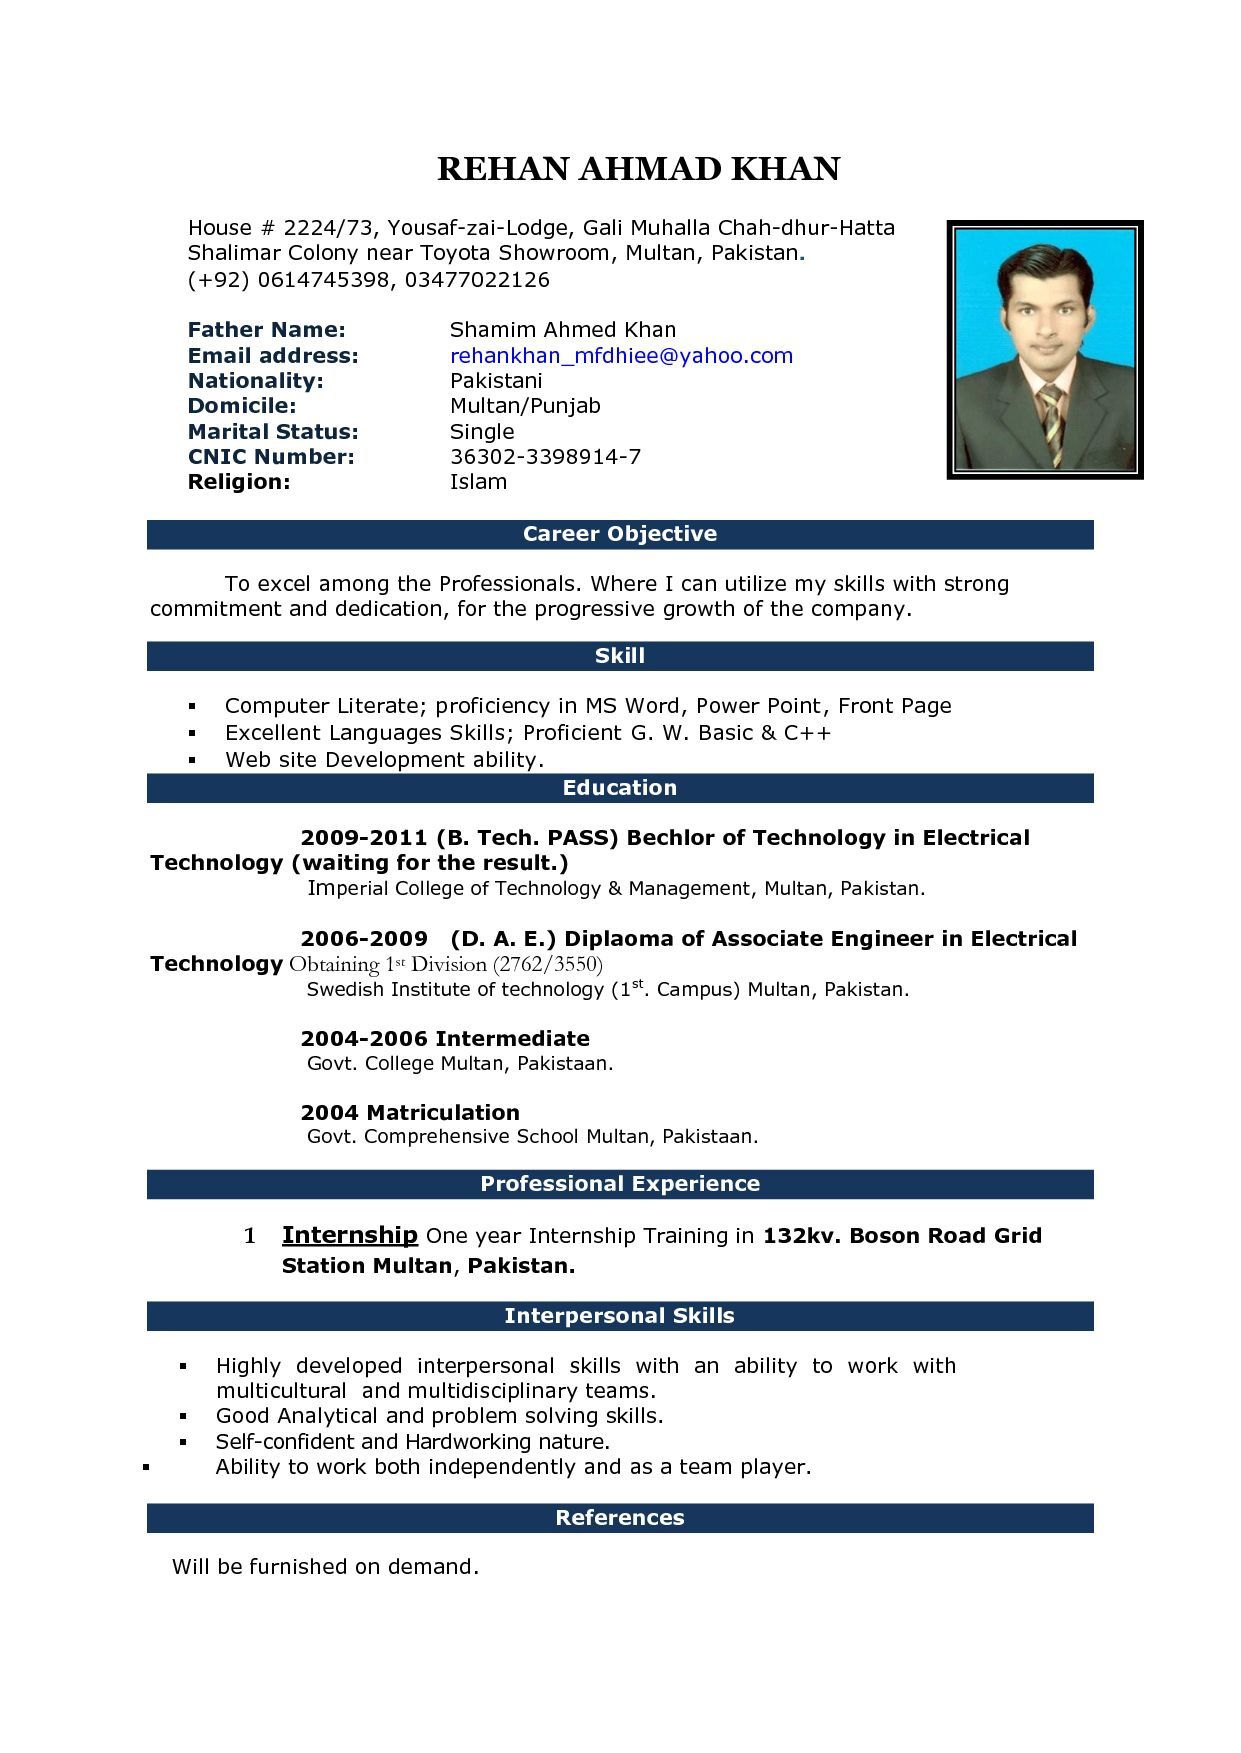 003 Singular Simple Resume Template Download In M Word Inspiration Full